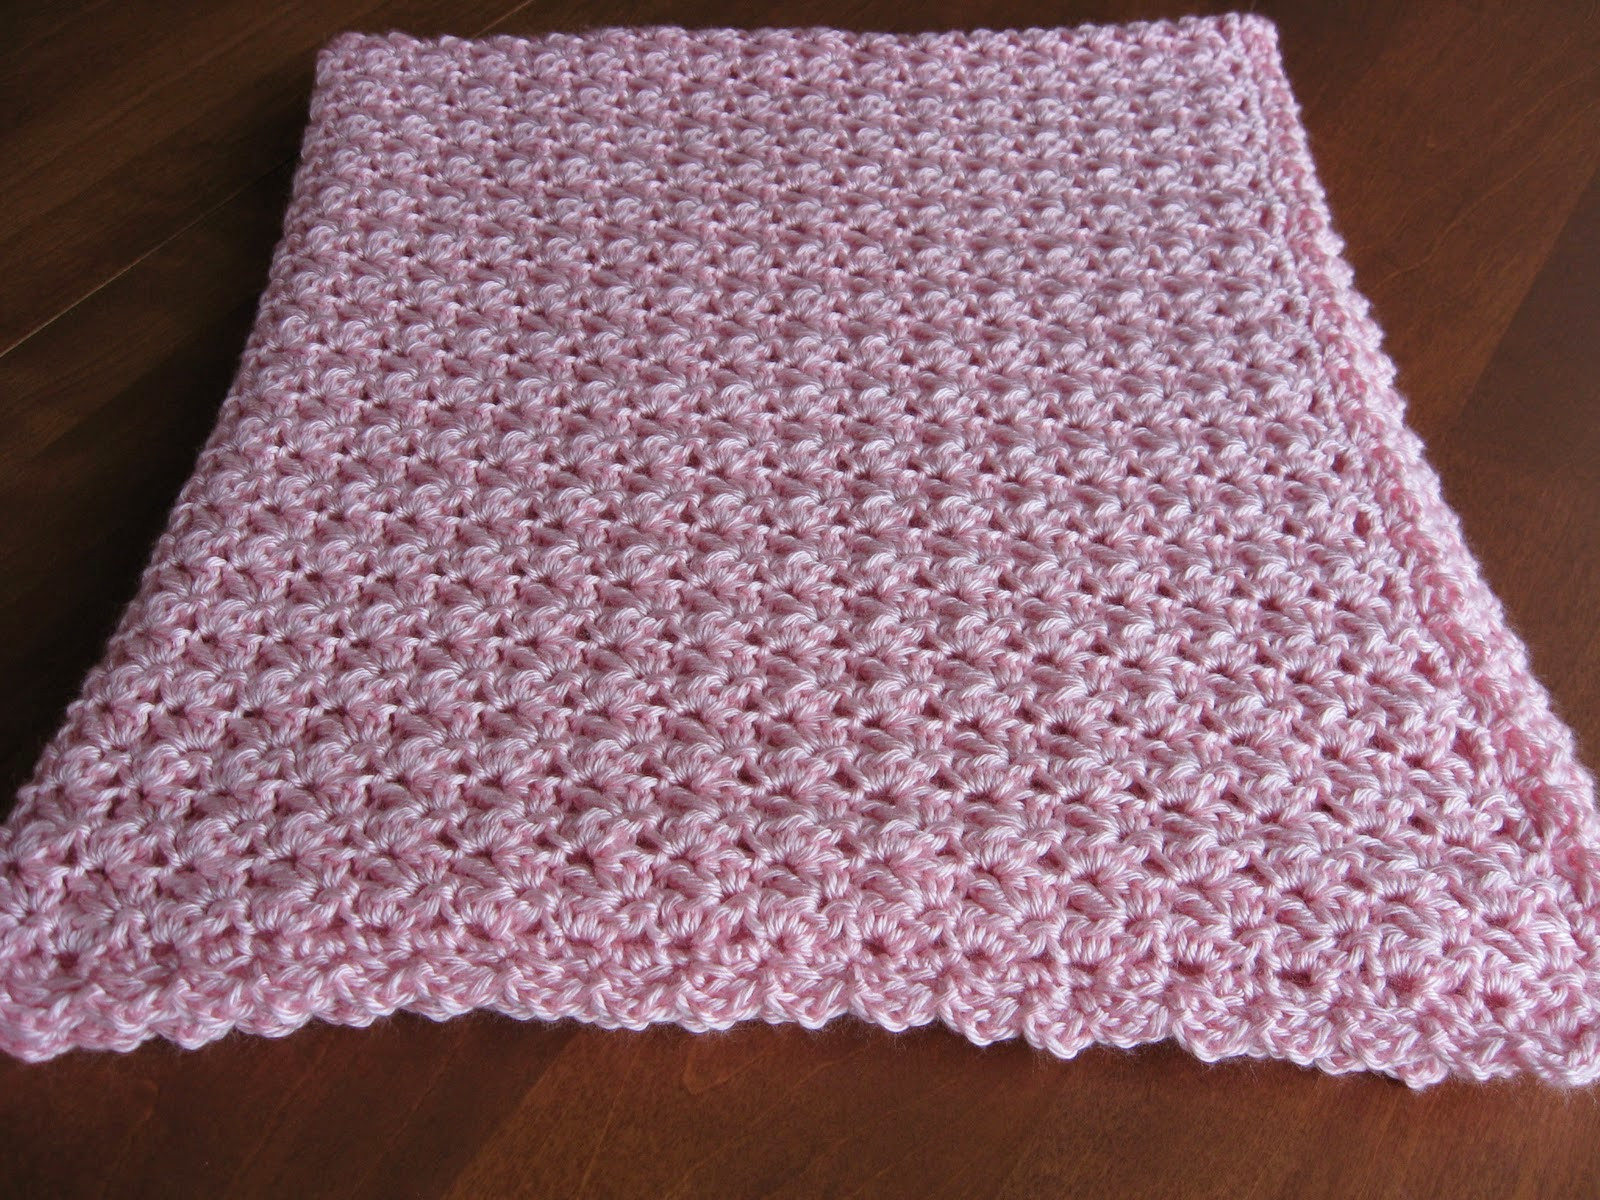 New Crocheting A Baby Blanket for Beginners Wmperm for Easiest Crochet Blanket Of New 50 Images Easiest Crochet Blanket